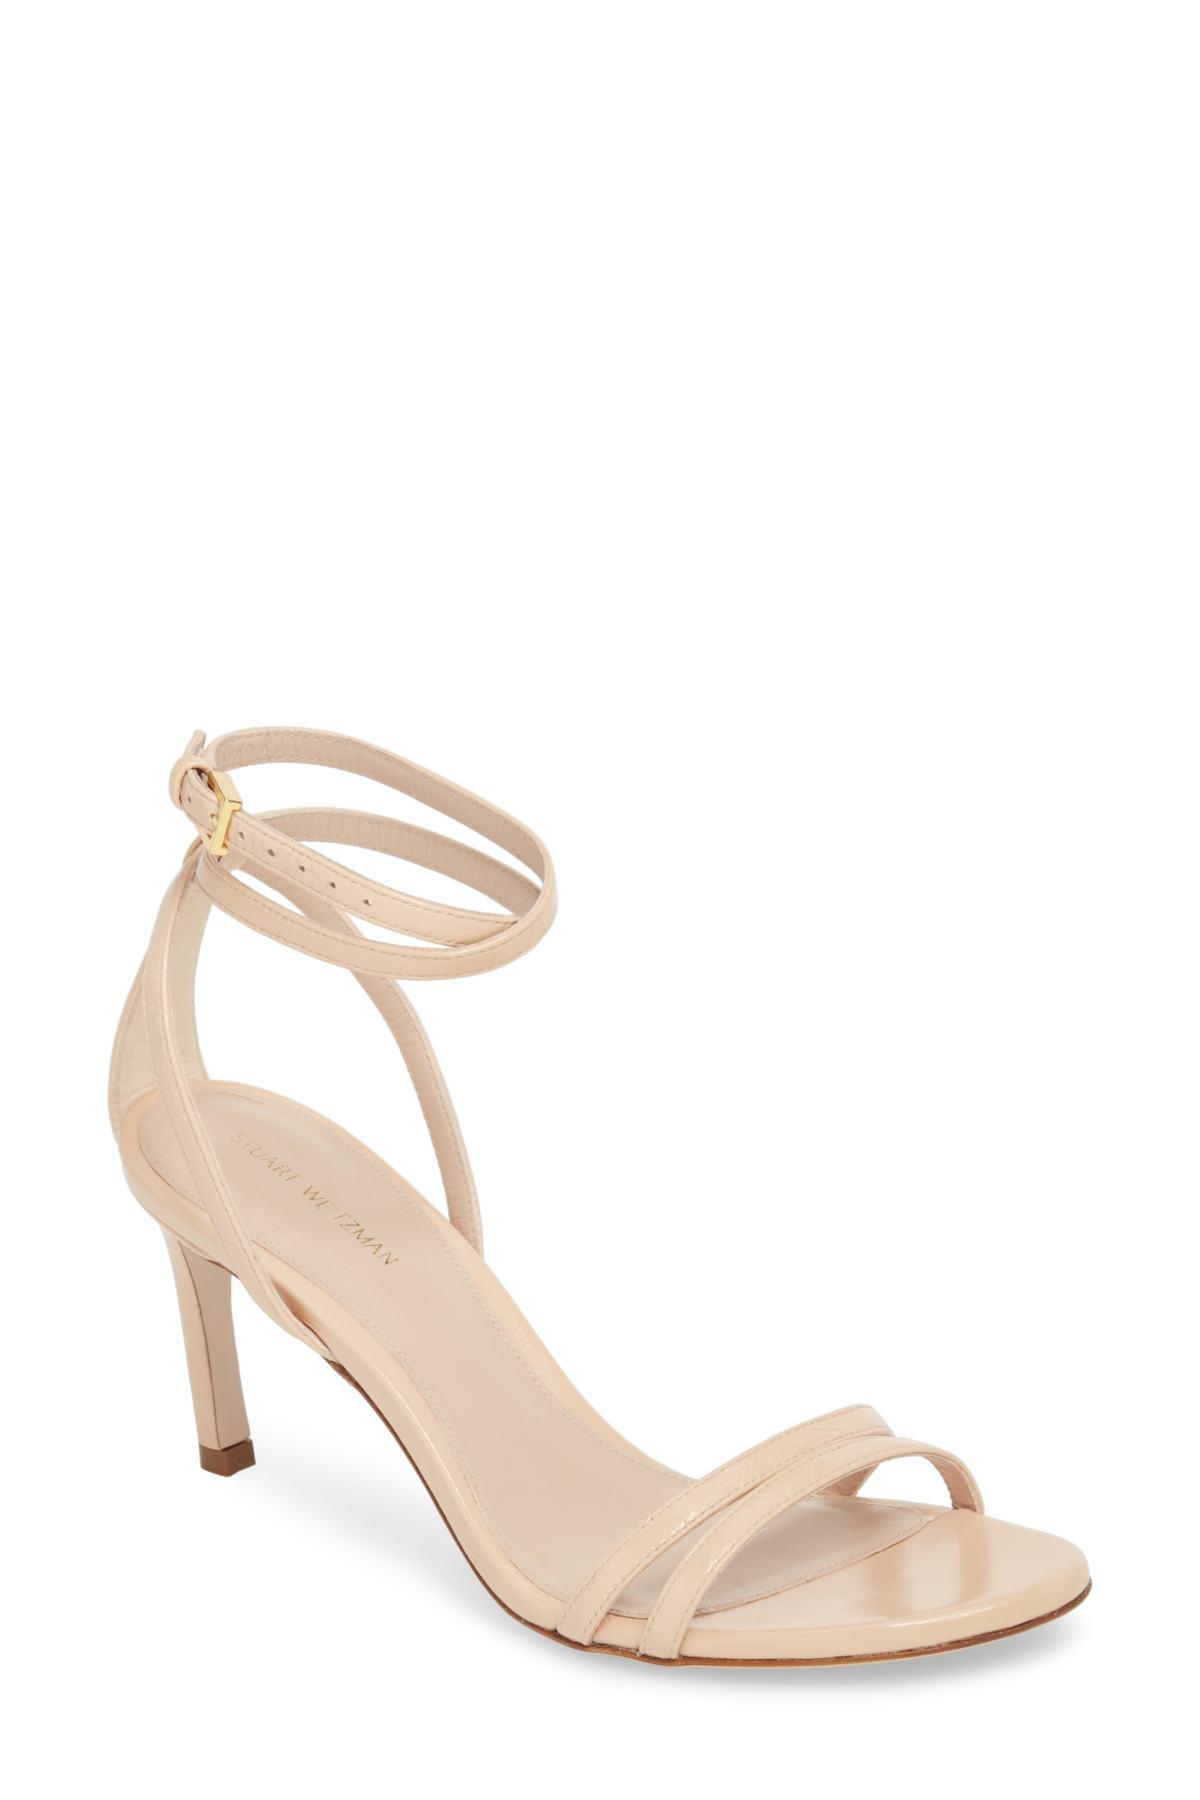 00794c6bd0684 Lyst - Stuart Weitzman Lexie Leather Sandals